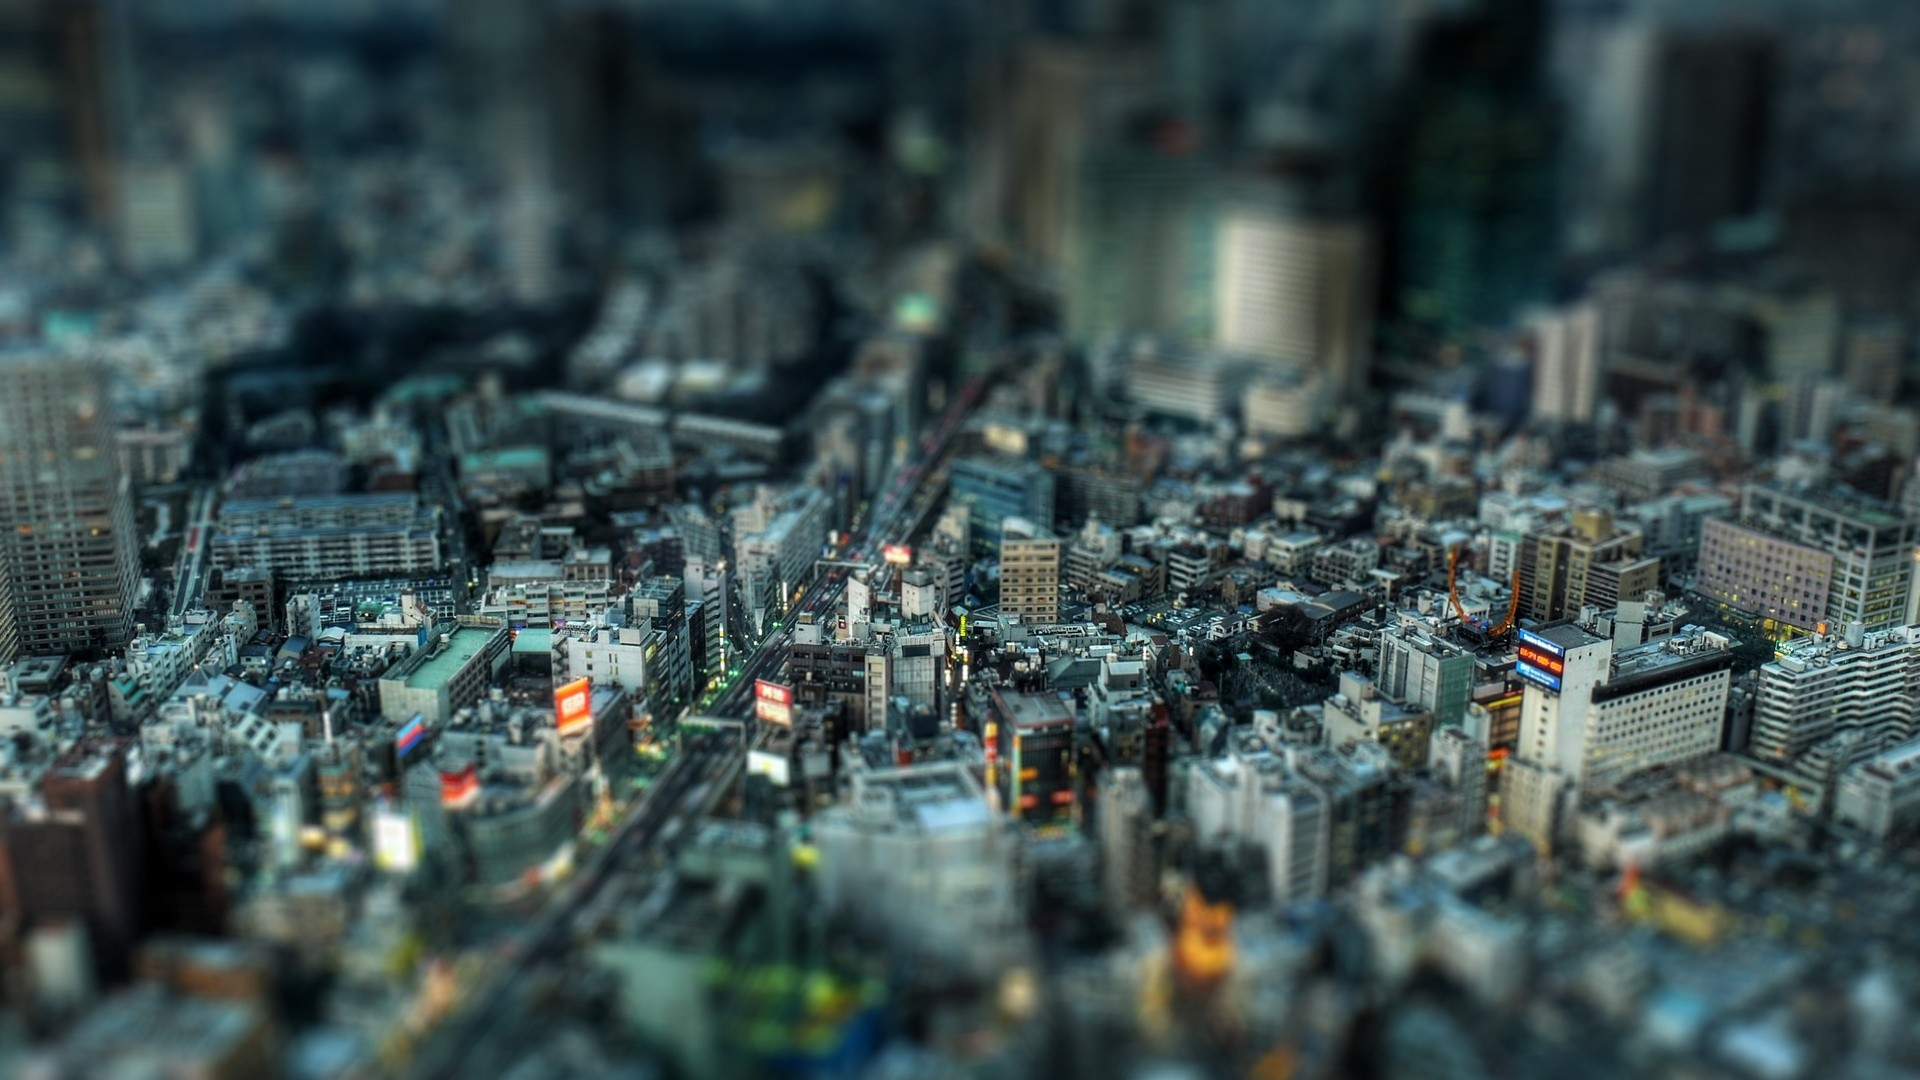 Res: 1920x1080, Download Top View Busy Crowded City 3D Wallpaper #3595 - HD .